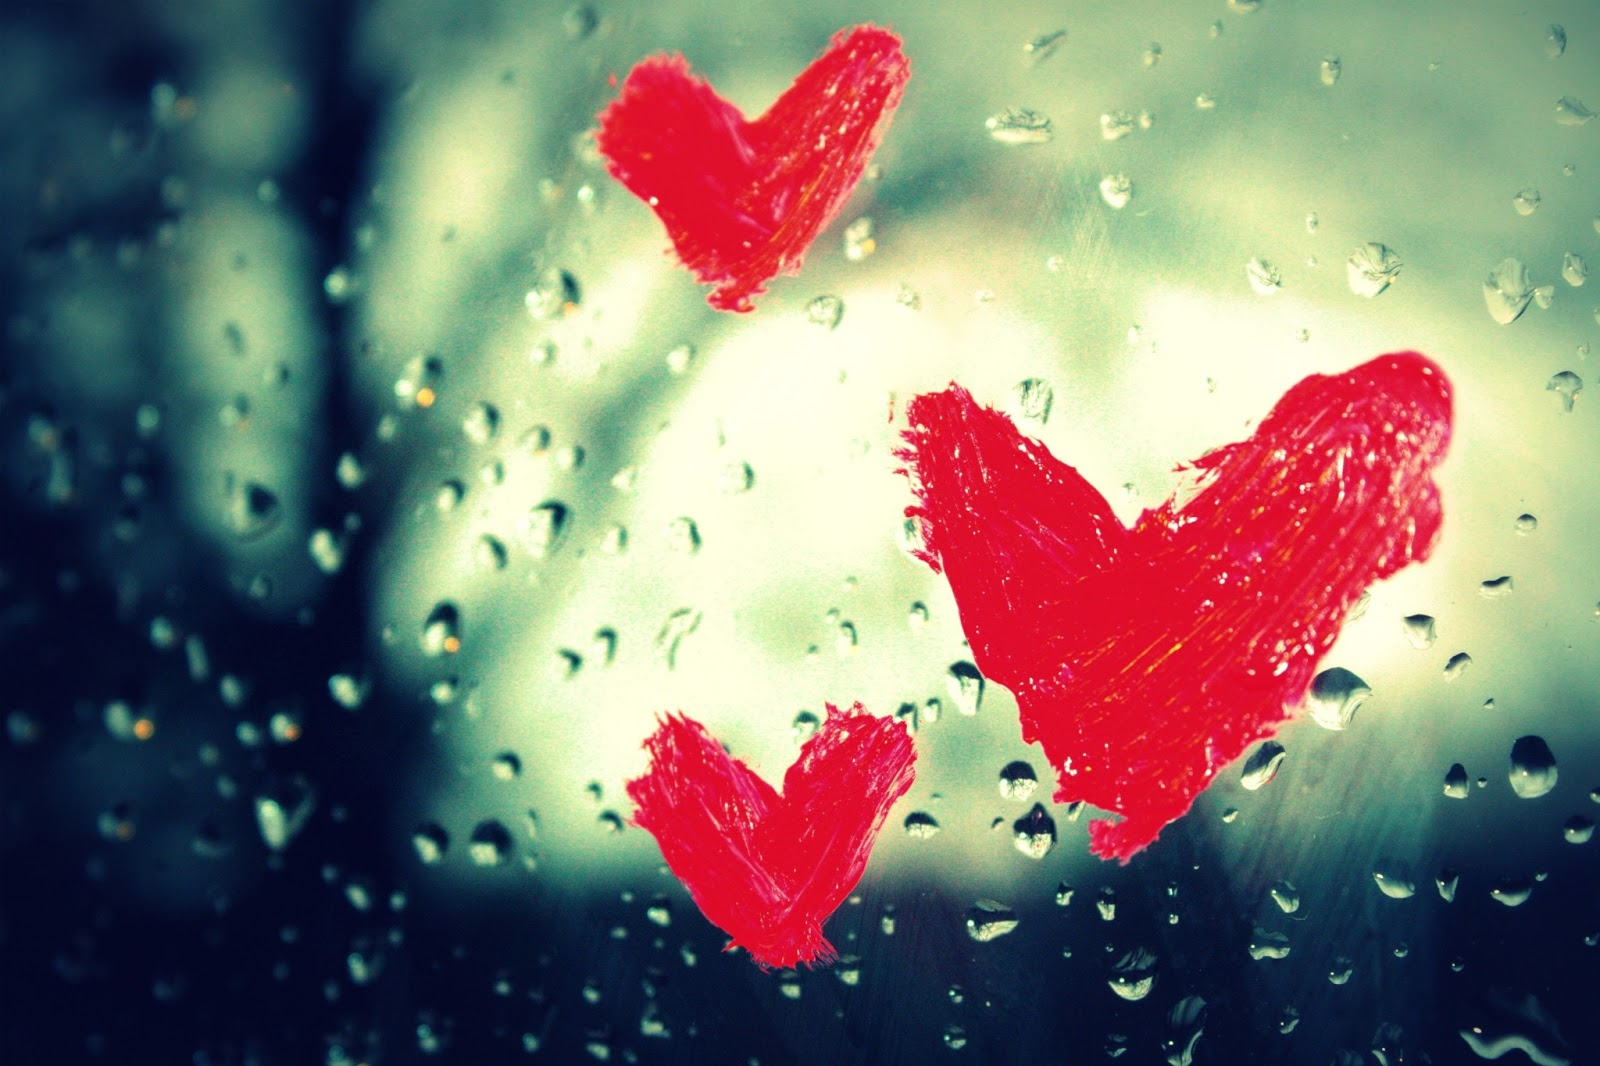 Love rain glass full hd download hd wallpapers and free images thecheapjerseys Gallery